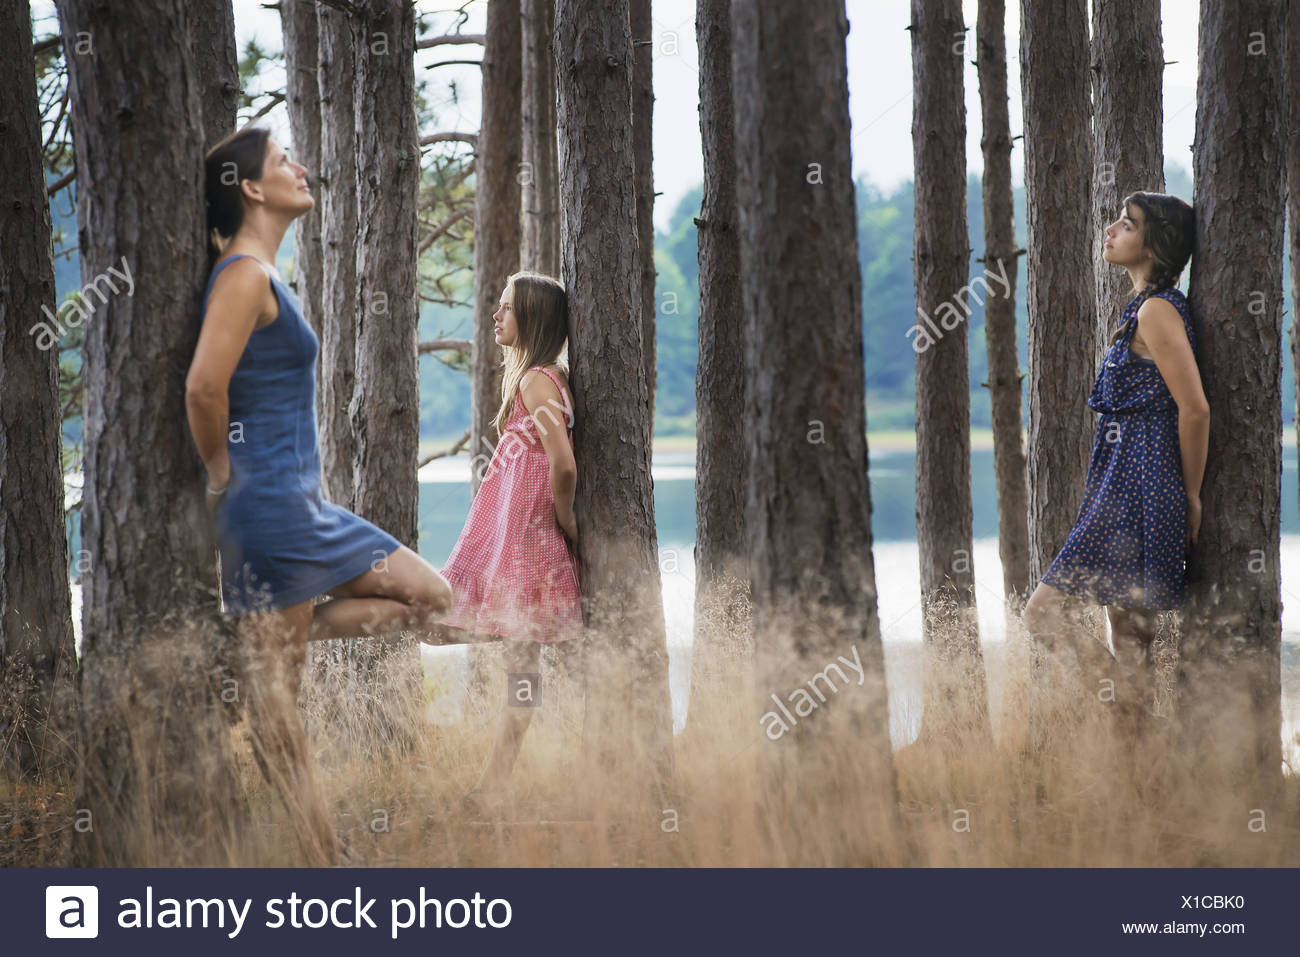 New York state USA people communing with nature tall straight trees - Stock Image